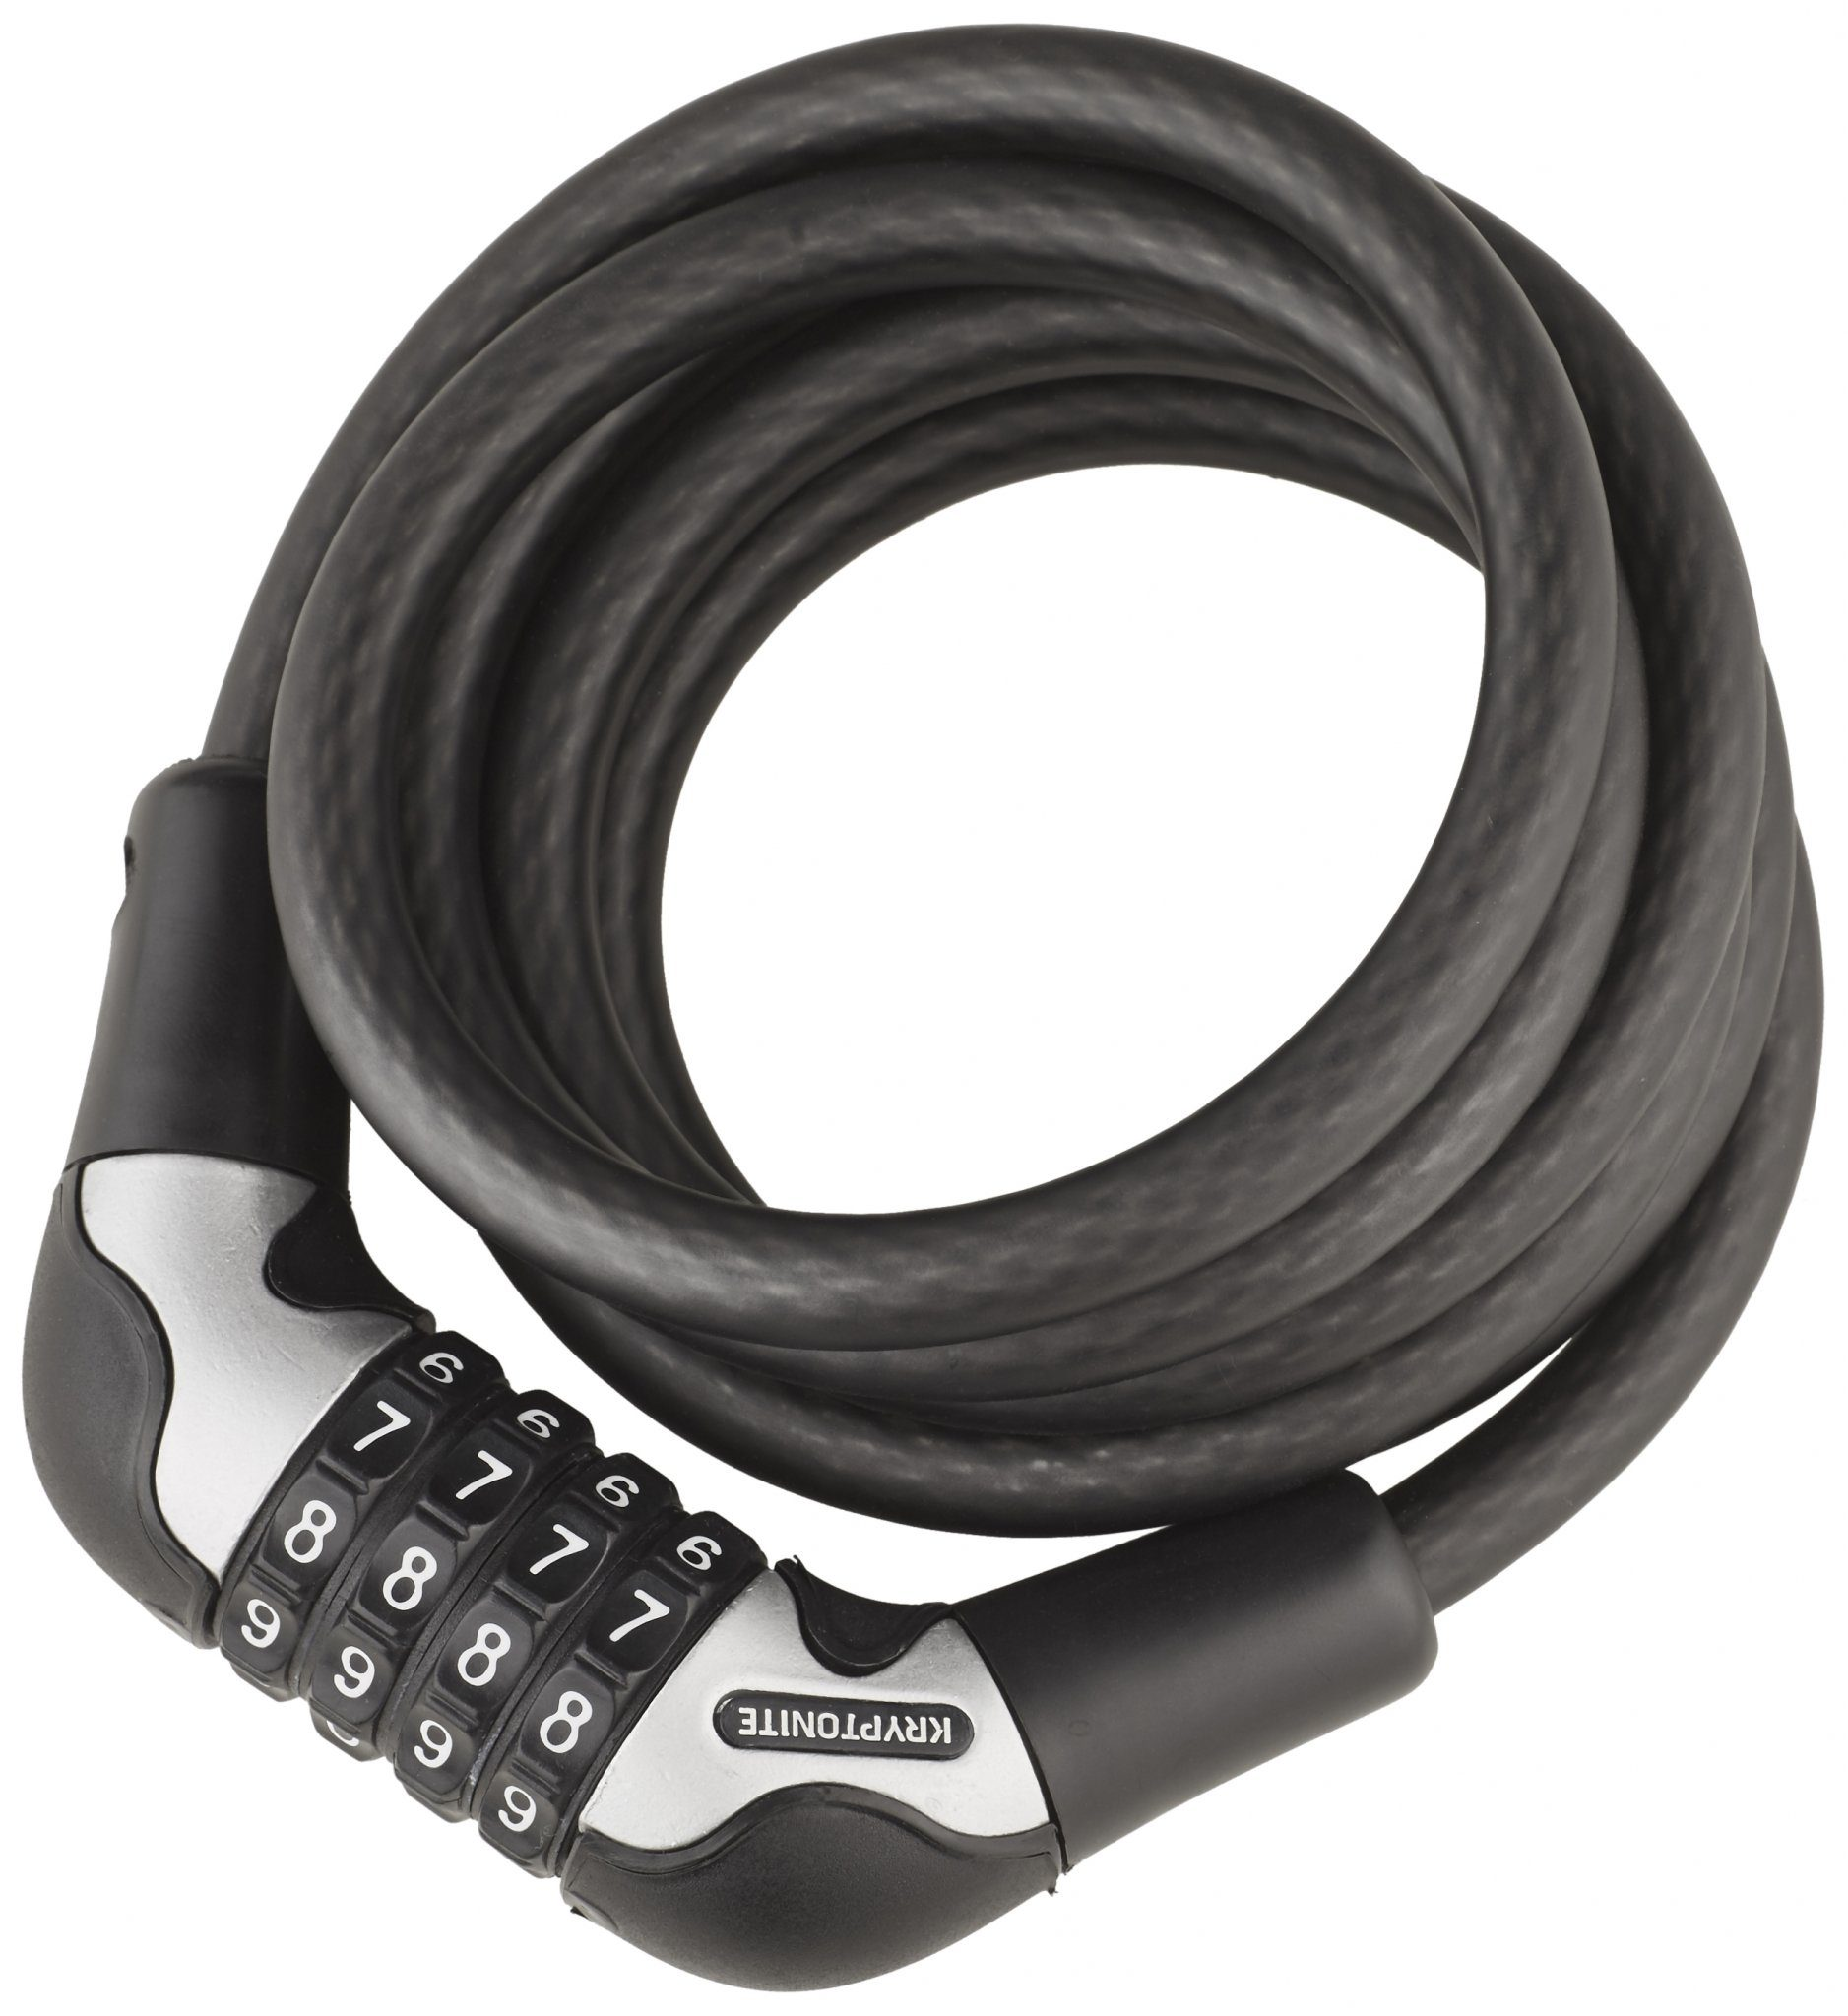 Kryptonite Fahrradschloss »KryptoFlex 1018 Combo Cable«